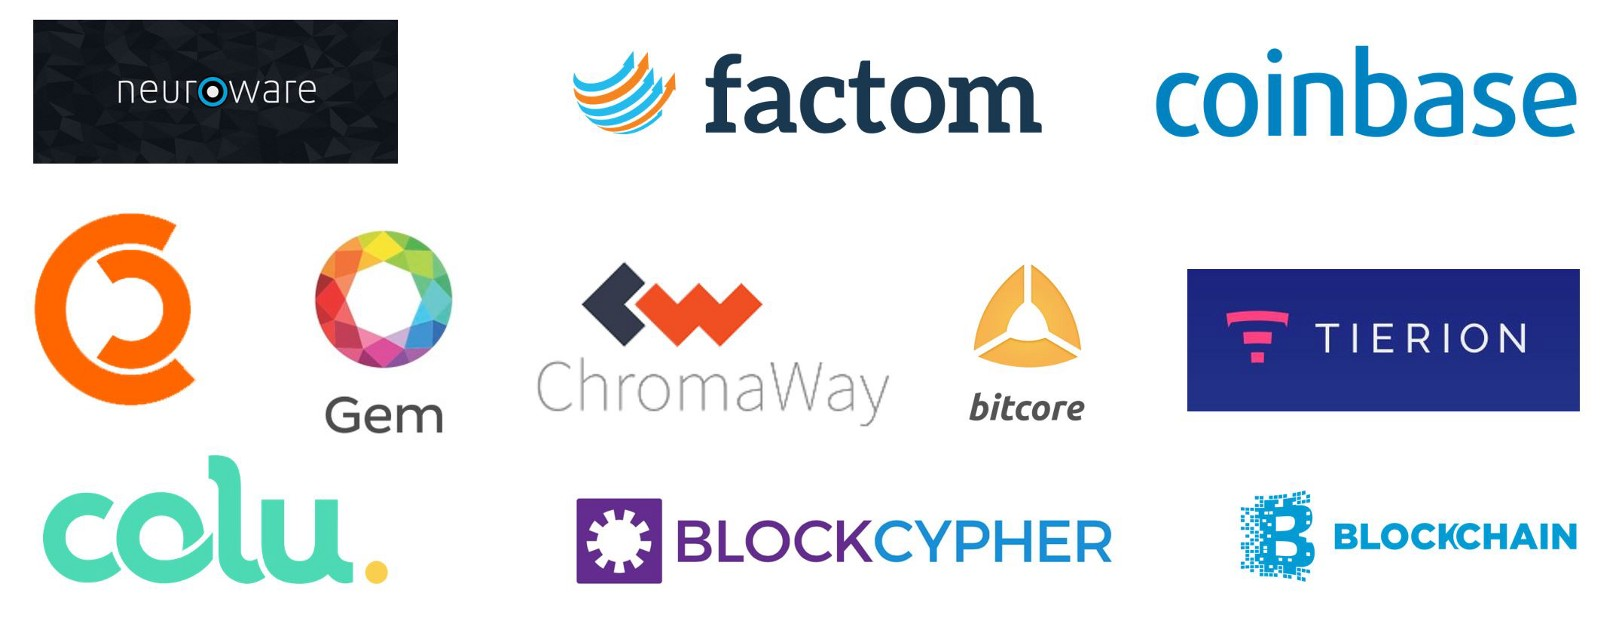 11 Blockchain API Providers That Are Allowing Developers to Build Next-Generation Applications